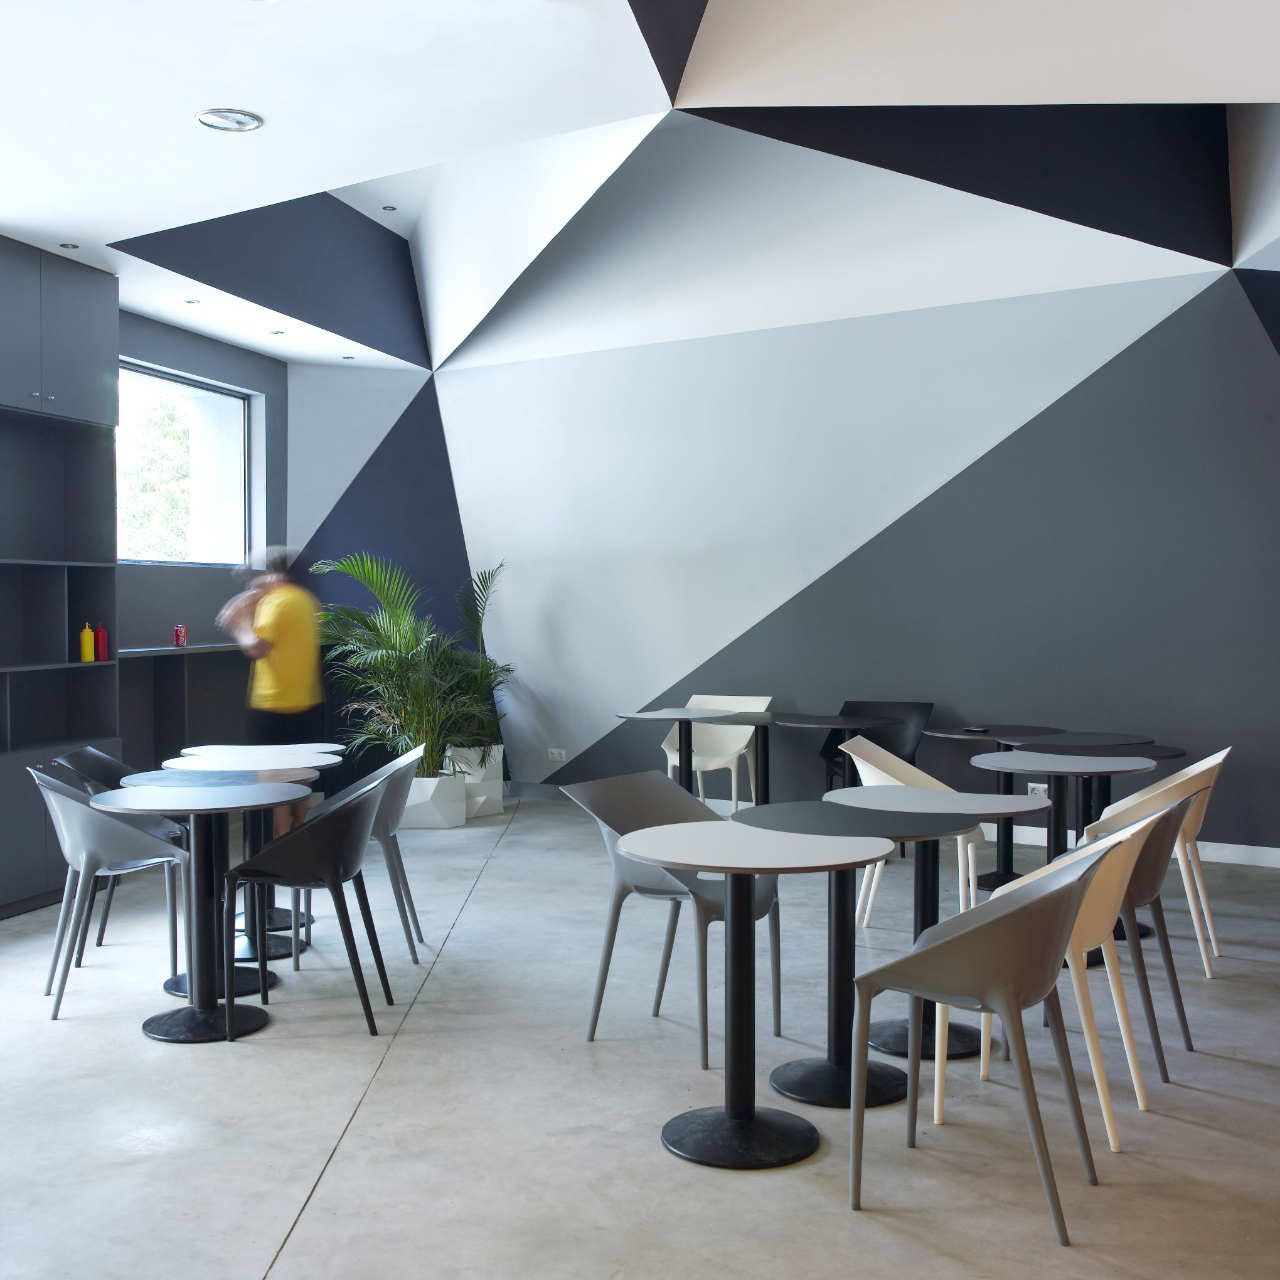 gallery of ara pizza pablo t llez 1 in 2019 ideas for the rh pinterest com